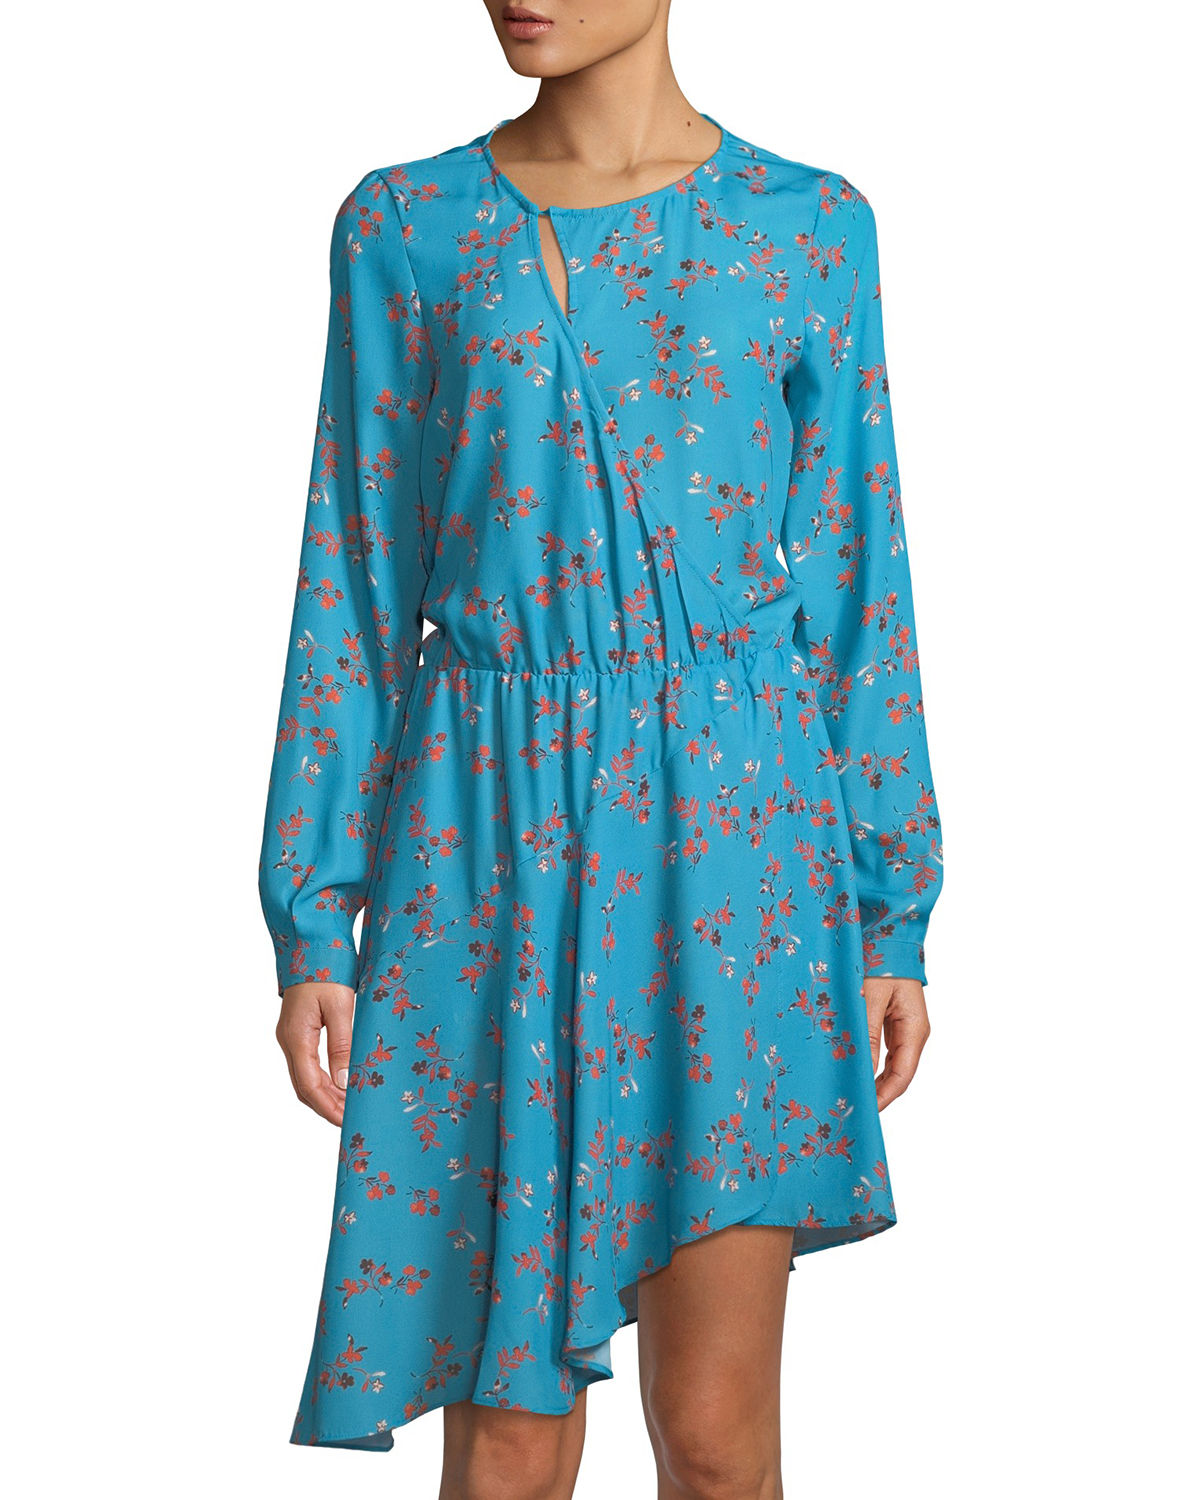 Long-Sleeve Printed Drape Dress